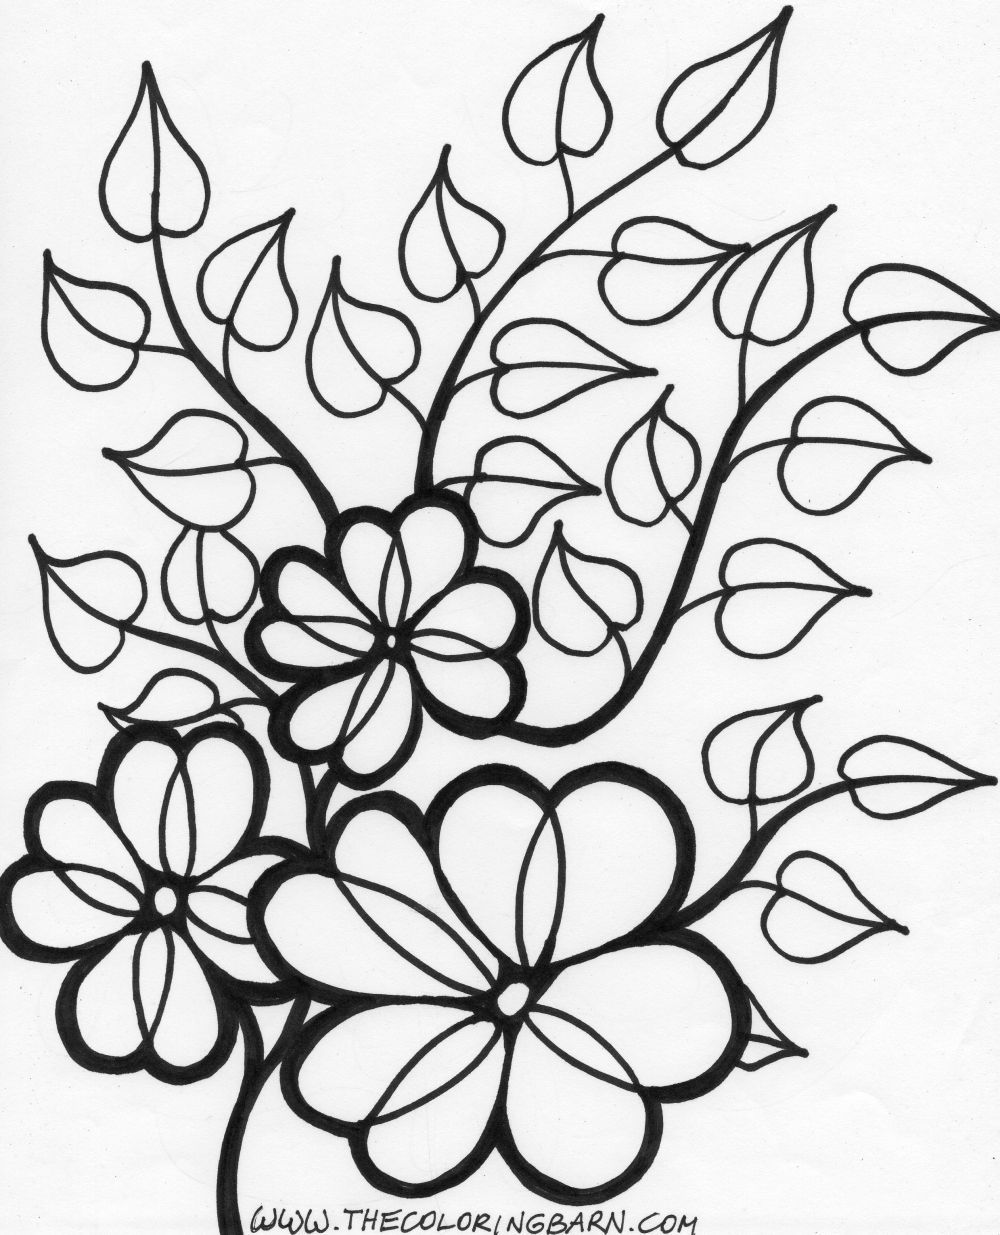 Flower Vines Coloring Page Wild Printable   Free Coloring